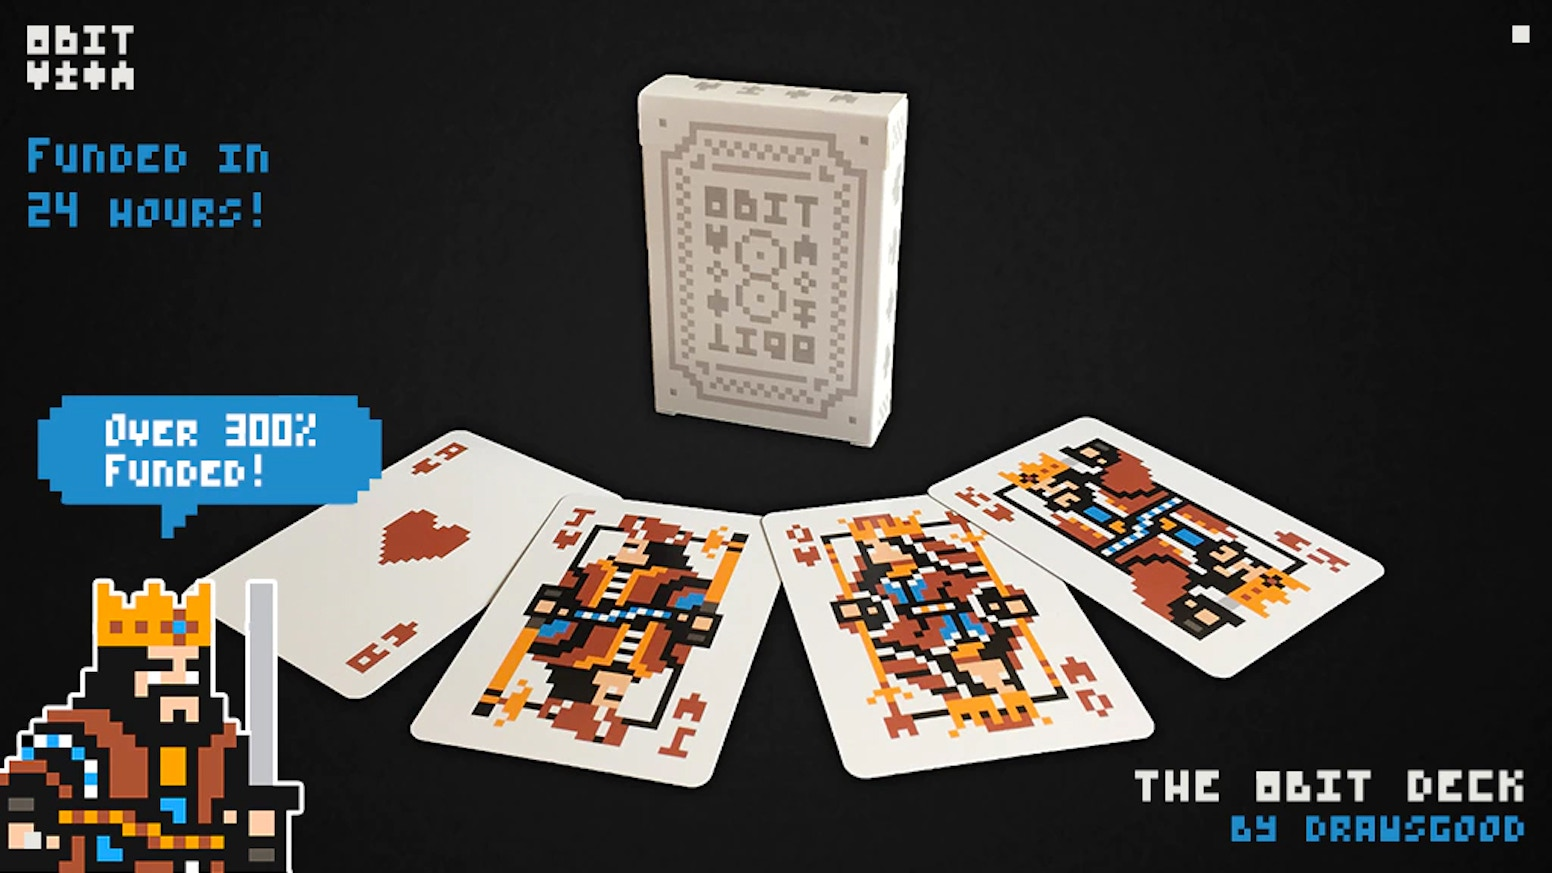 The 8Bit Deck - A carefully crafted pixel art playing card deck with a palette inspired by the Pico-8 fantasy gaming console